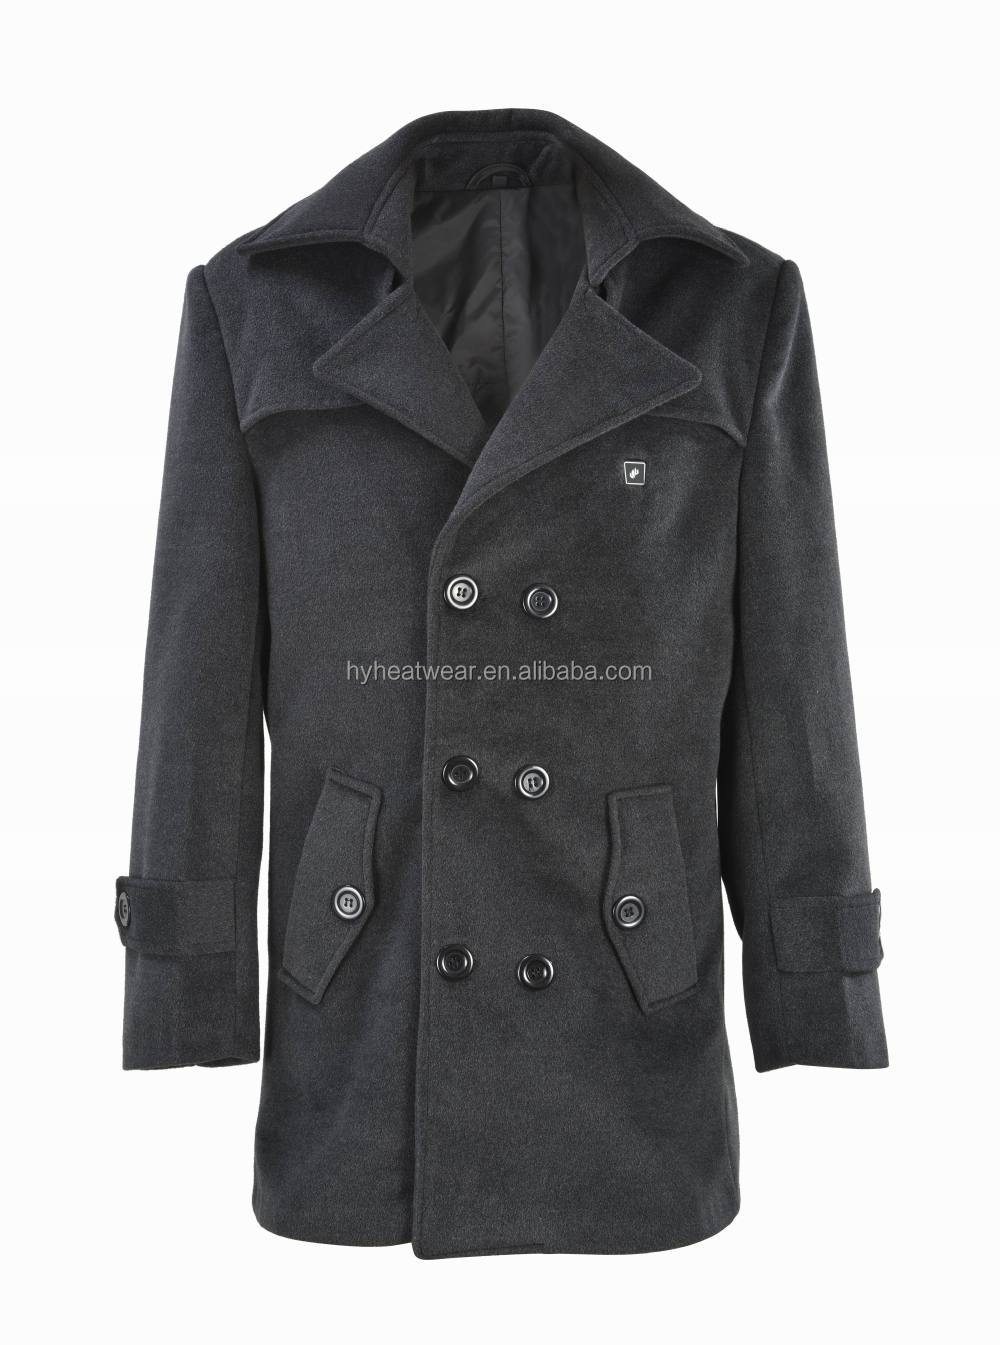 2014 European Fashion Winter Coats Battery Heated Winter Coats